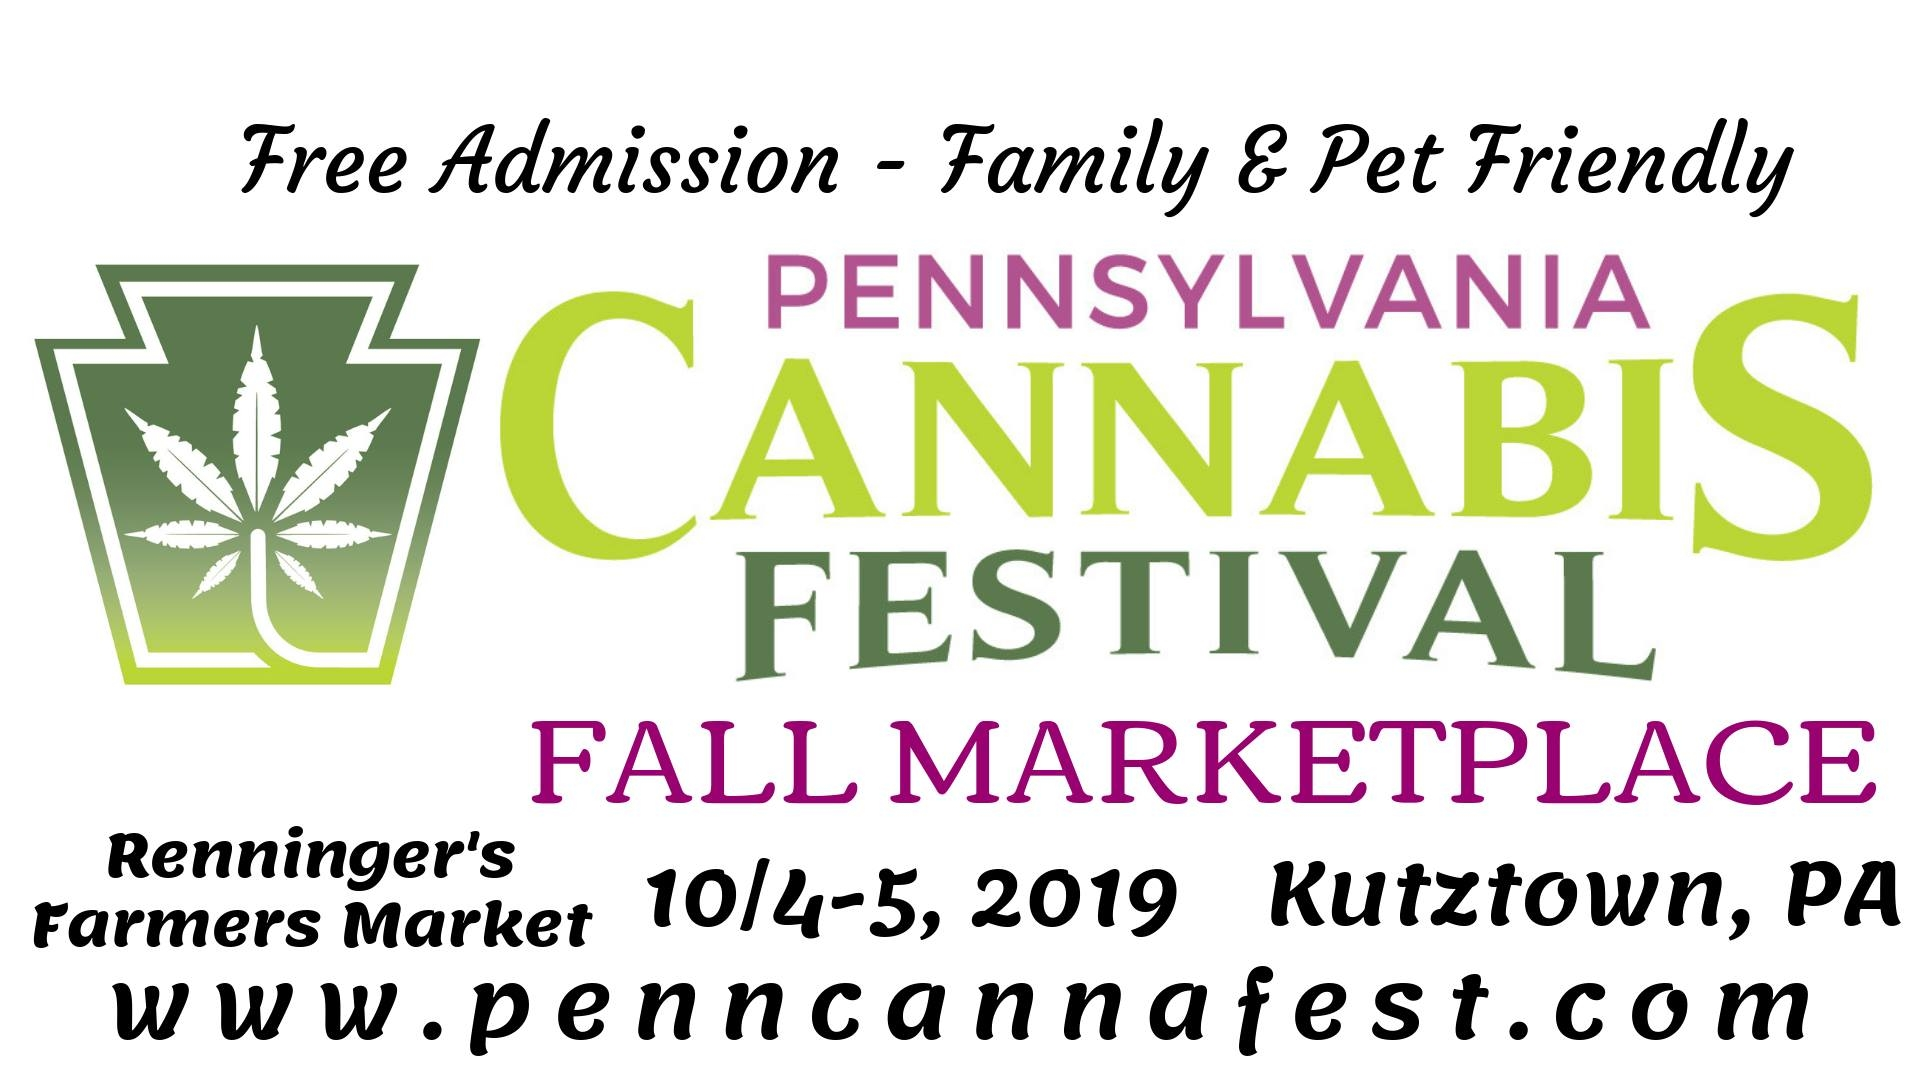 IPennsylvania Cannabis Festival - Fall Marketplace (Kutztown, PA)